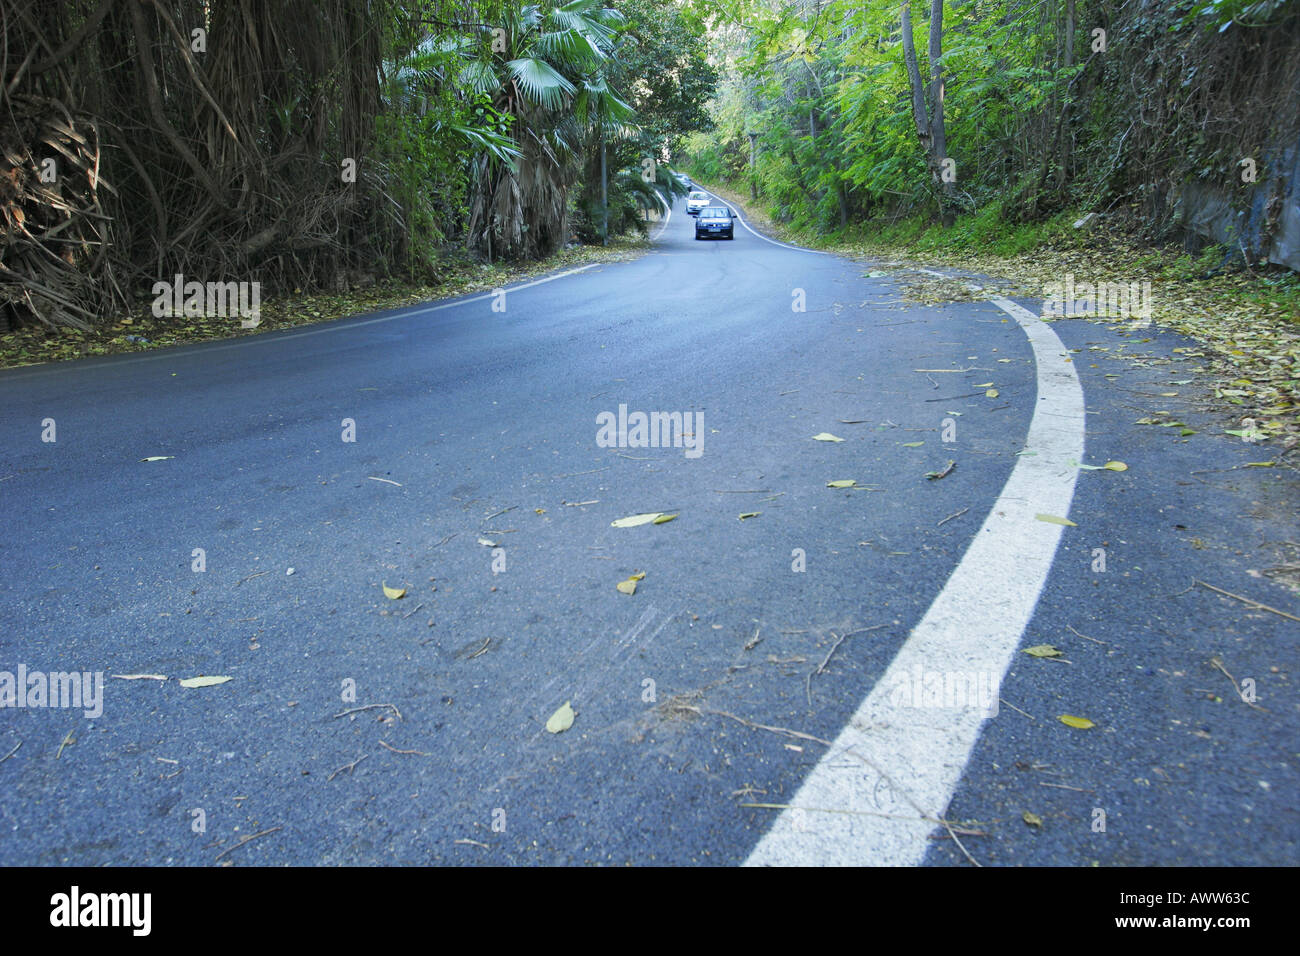 Country road - Stock Image